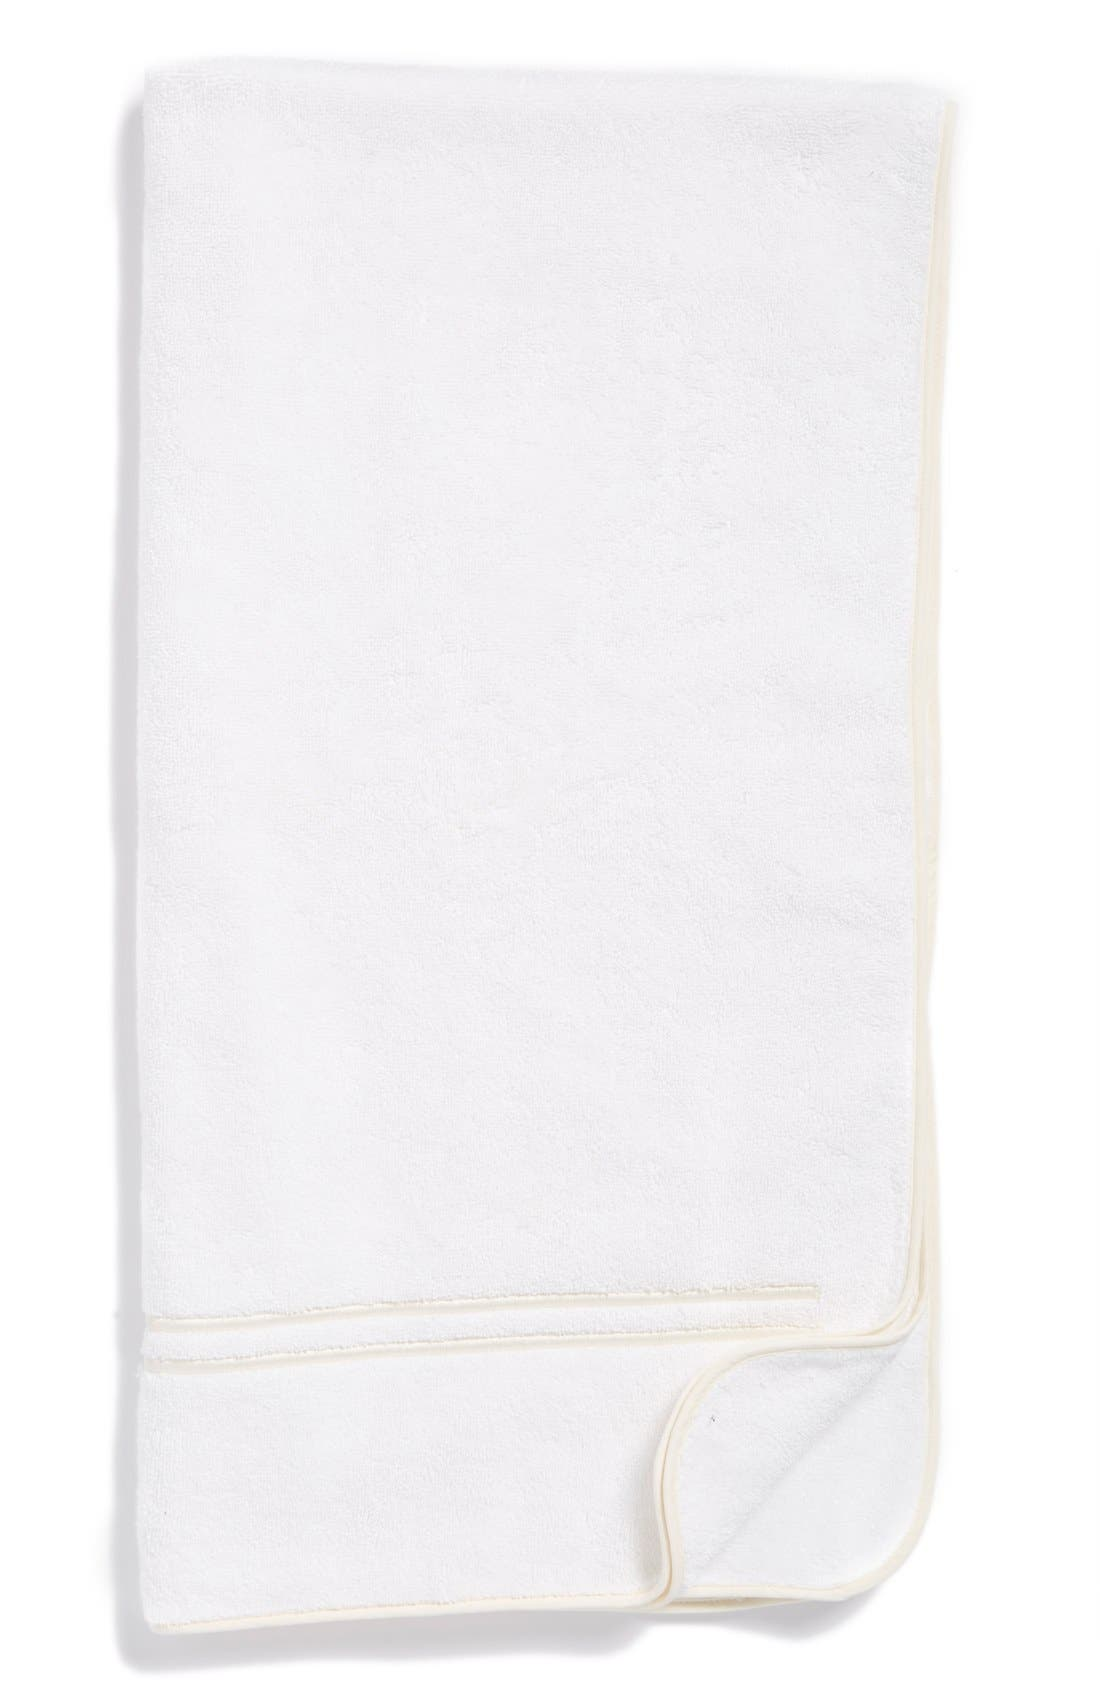 KASSATEX 'Broderie' Turkish Cotton Bath Towel